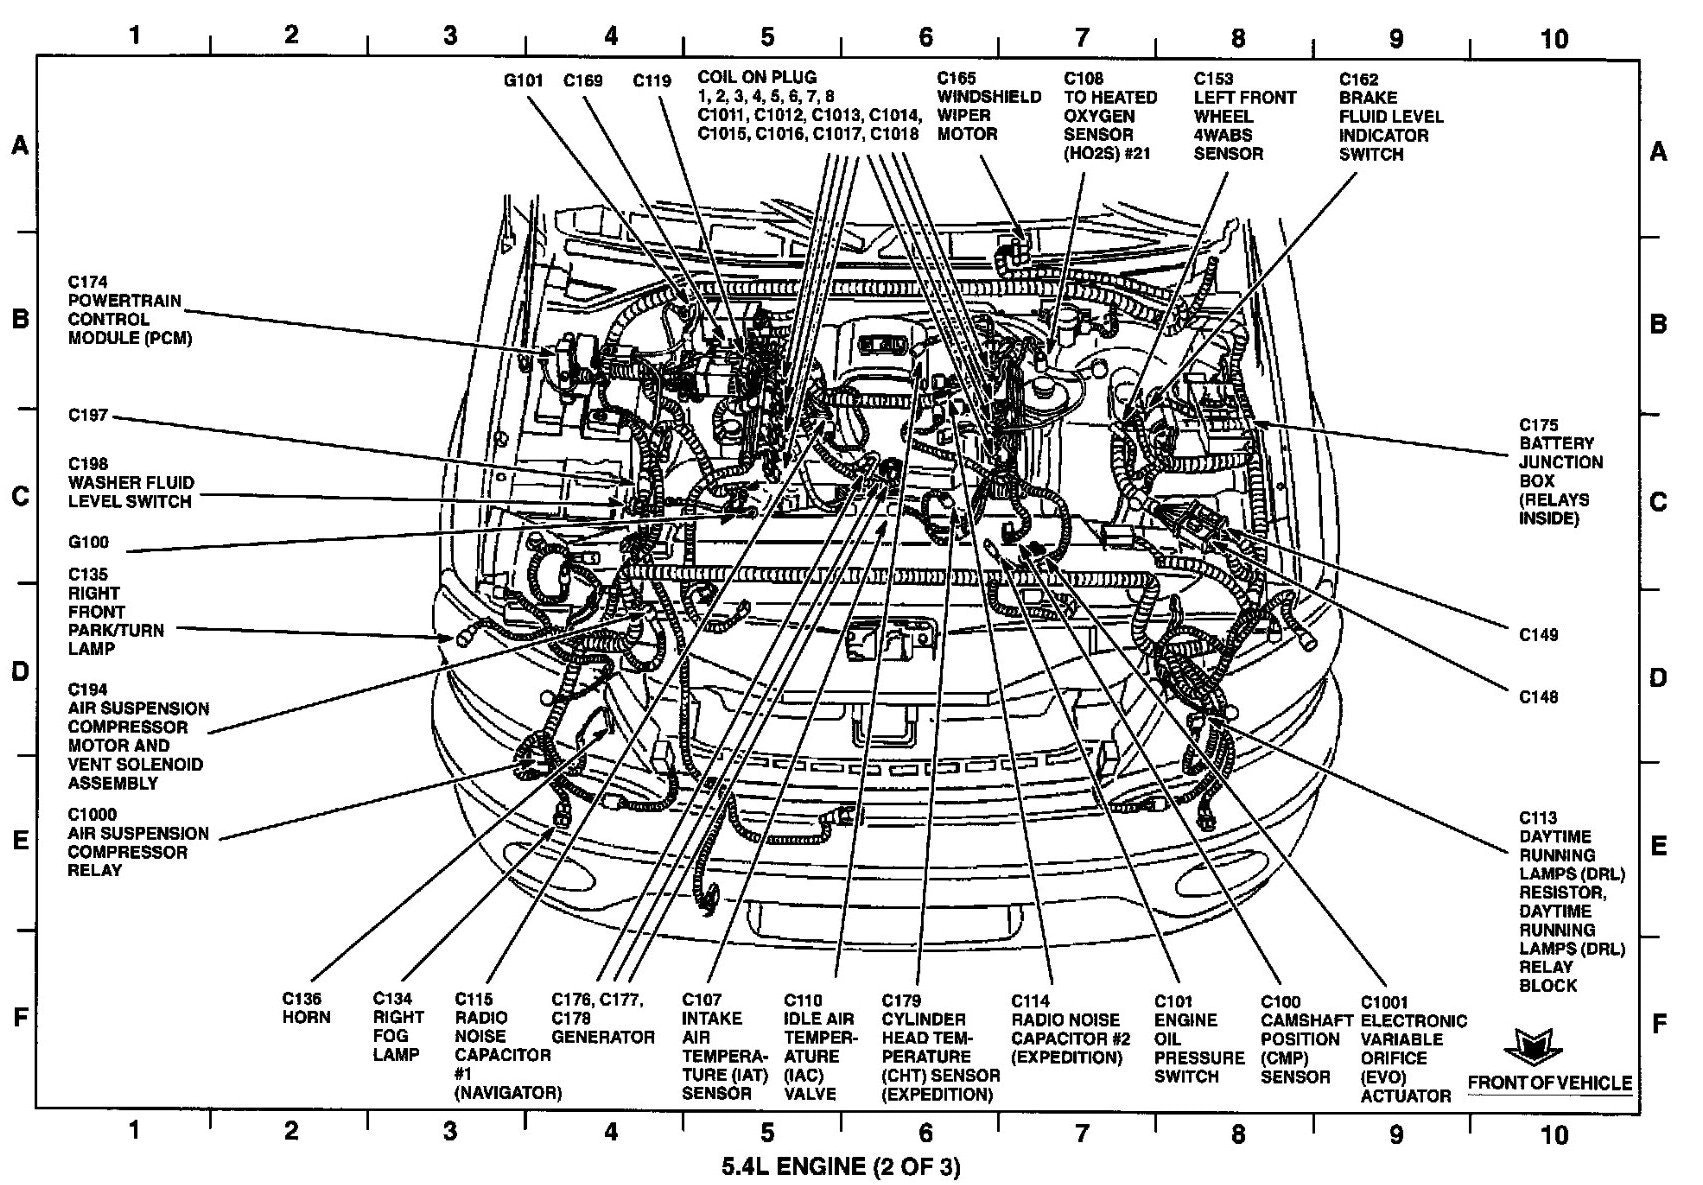 hight resolution of 2000 ford expedition engine diagram wiring diagram operations 2000 ford expedition engine diagram